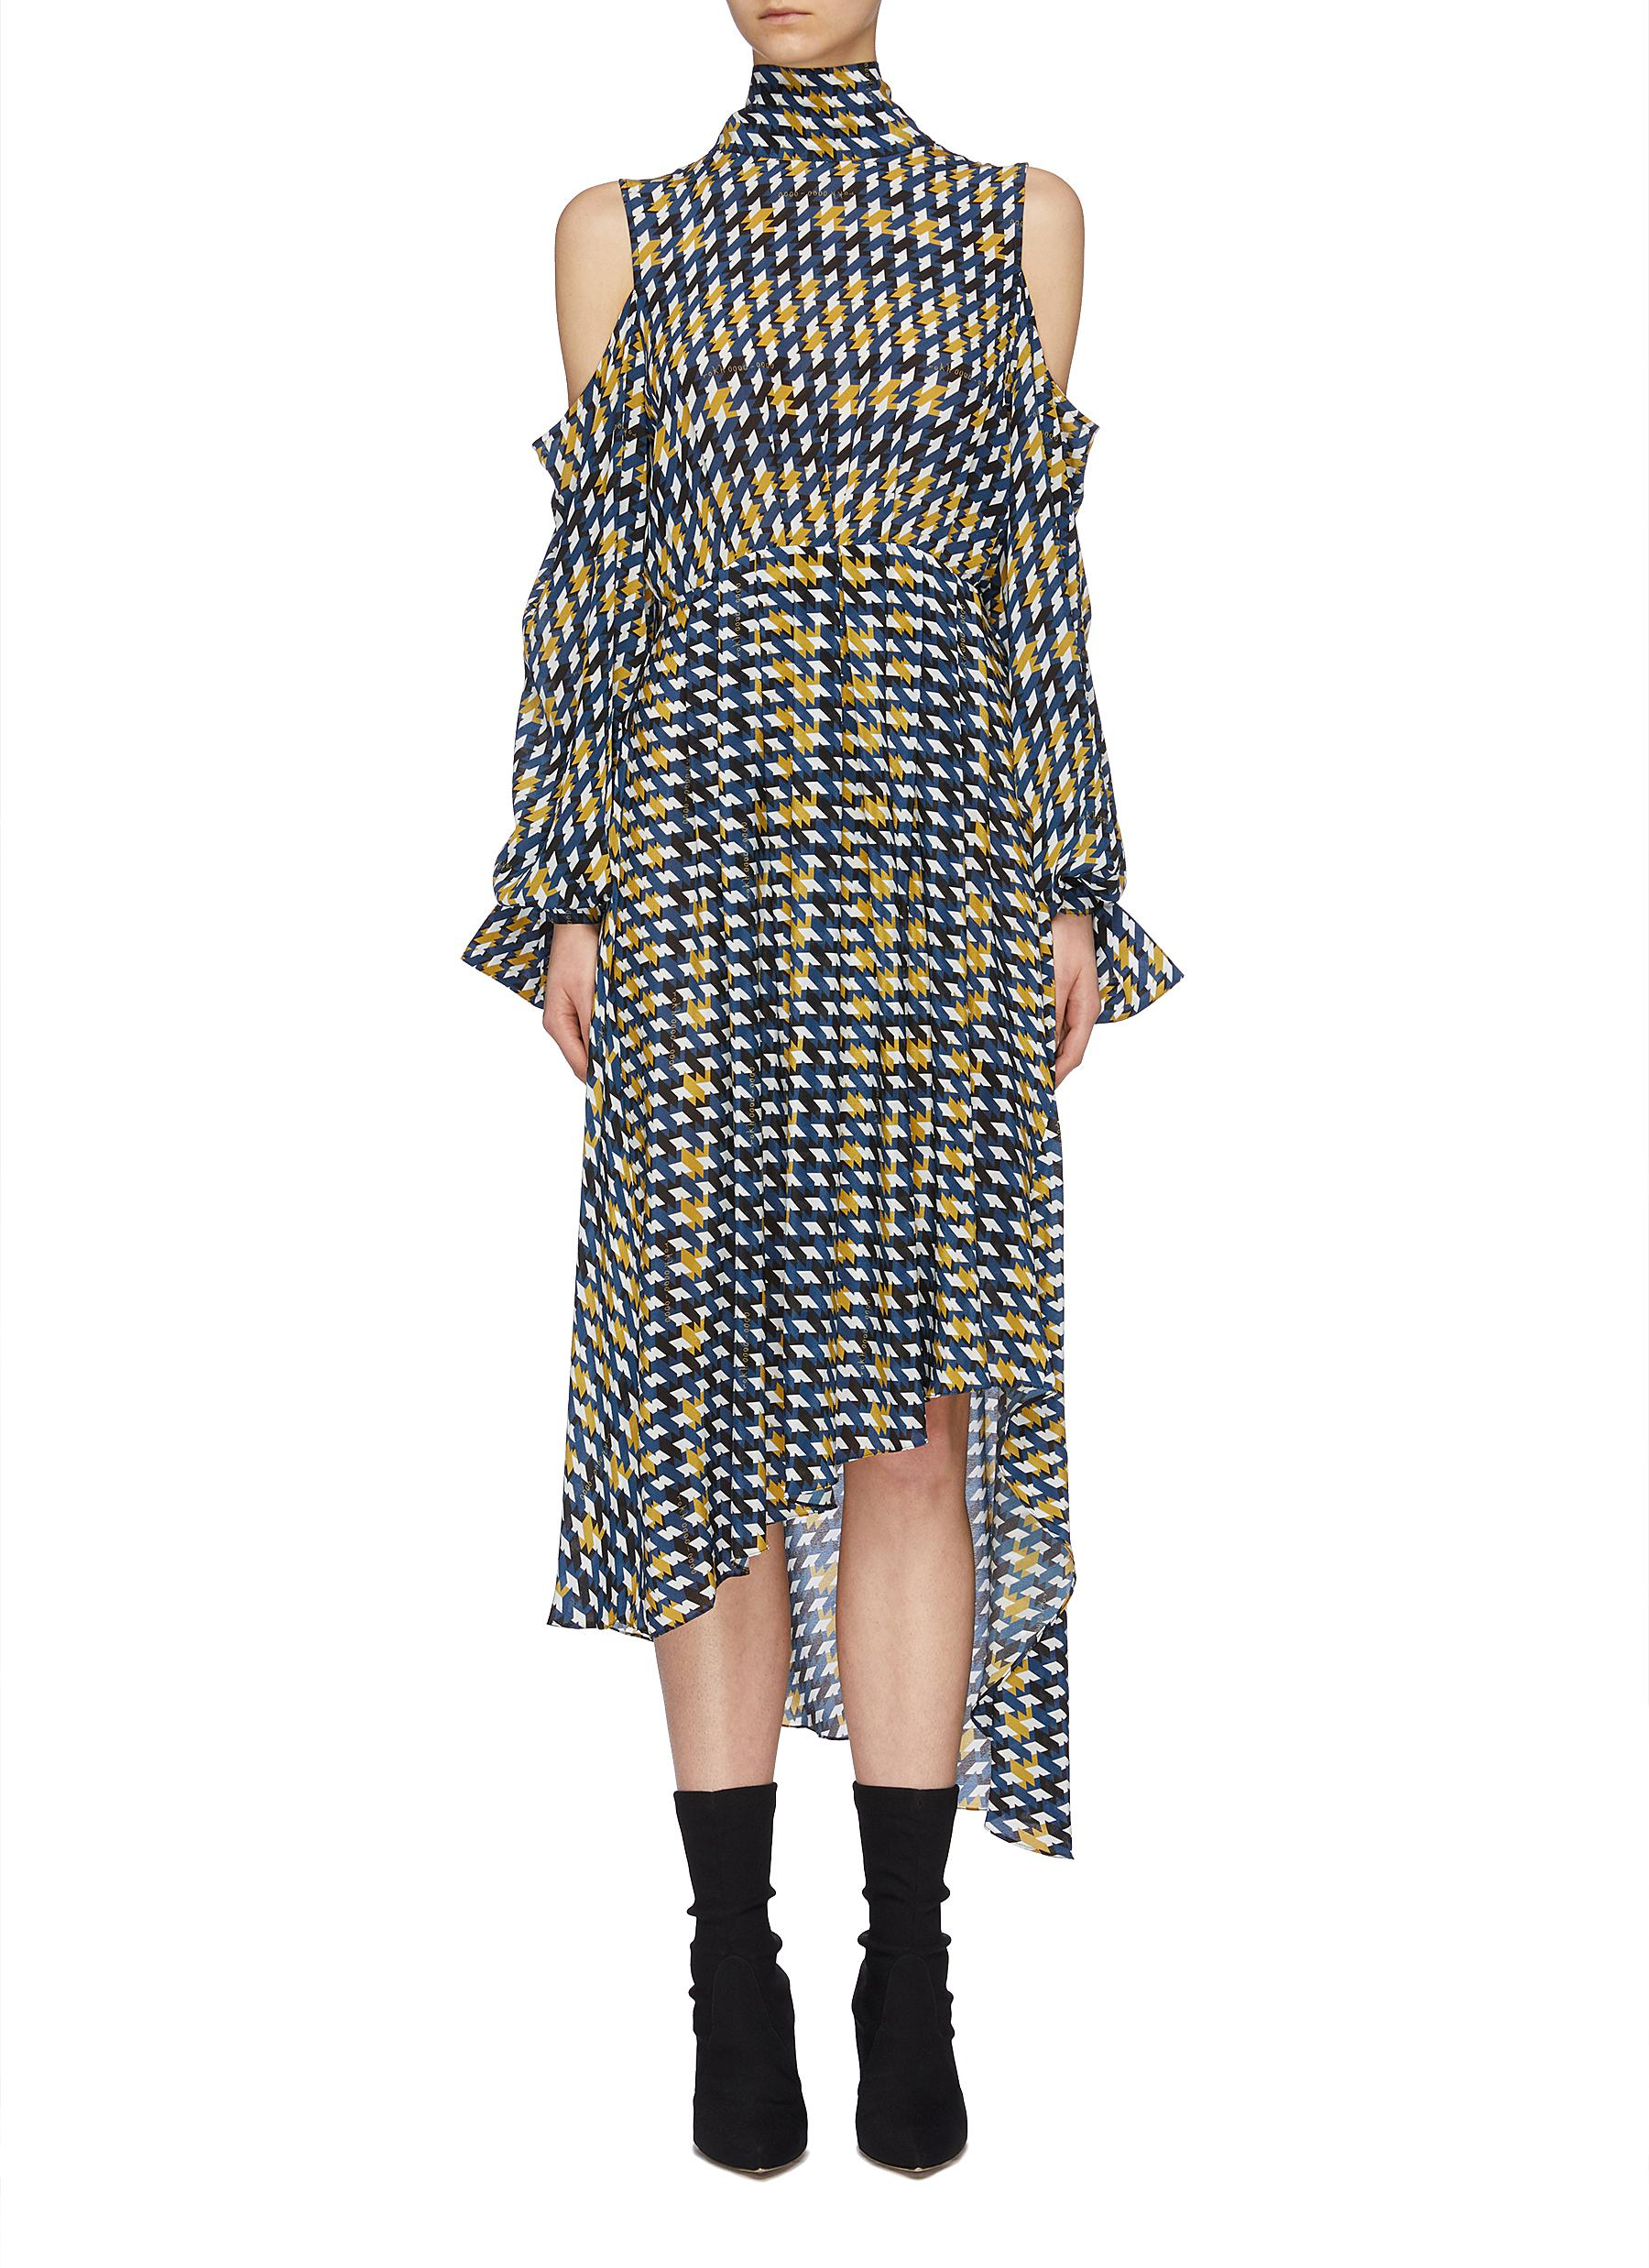 67004147cc Main View - Click To Enlarge - rokh - Tie open back graphic print cold  shoulder